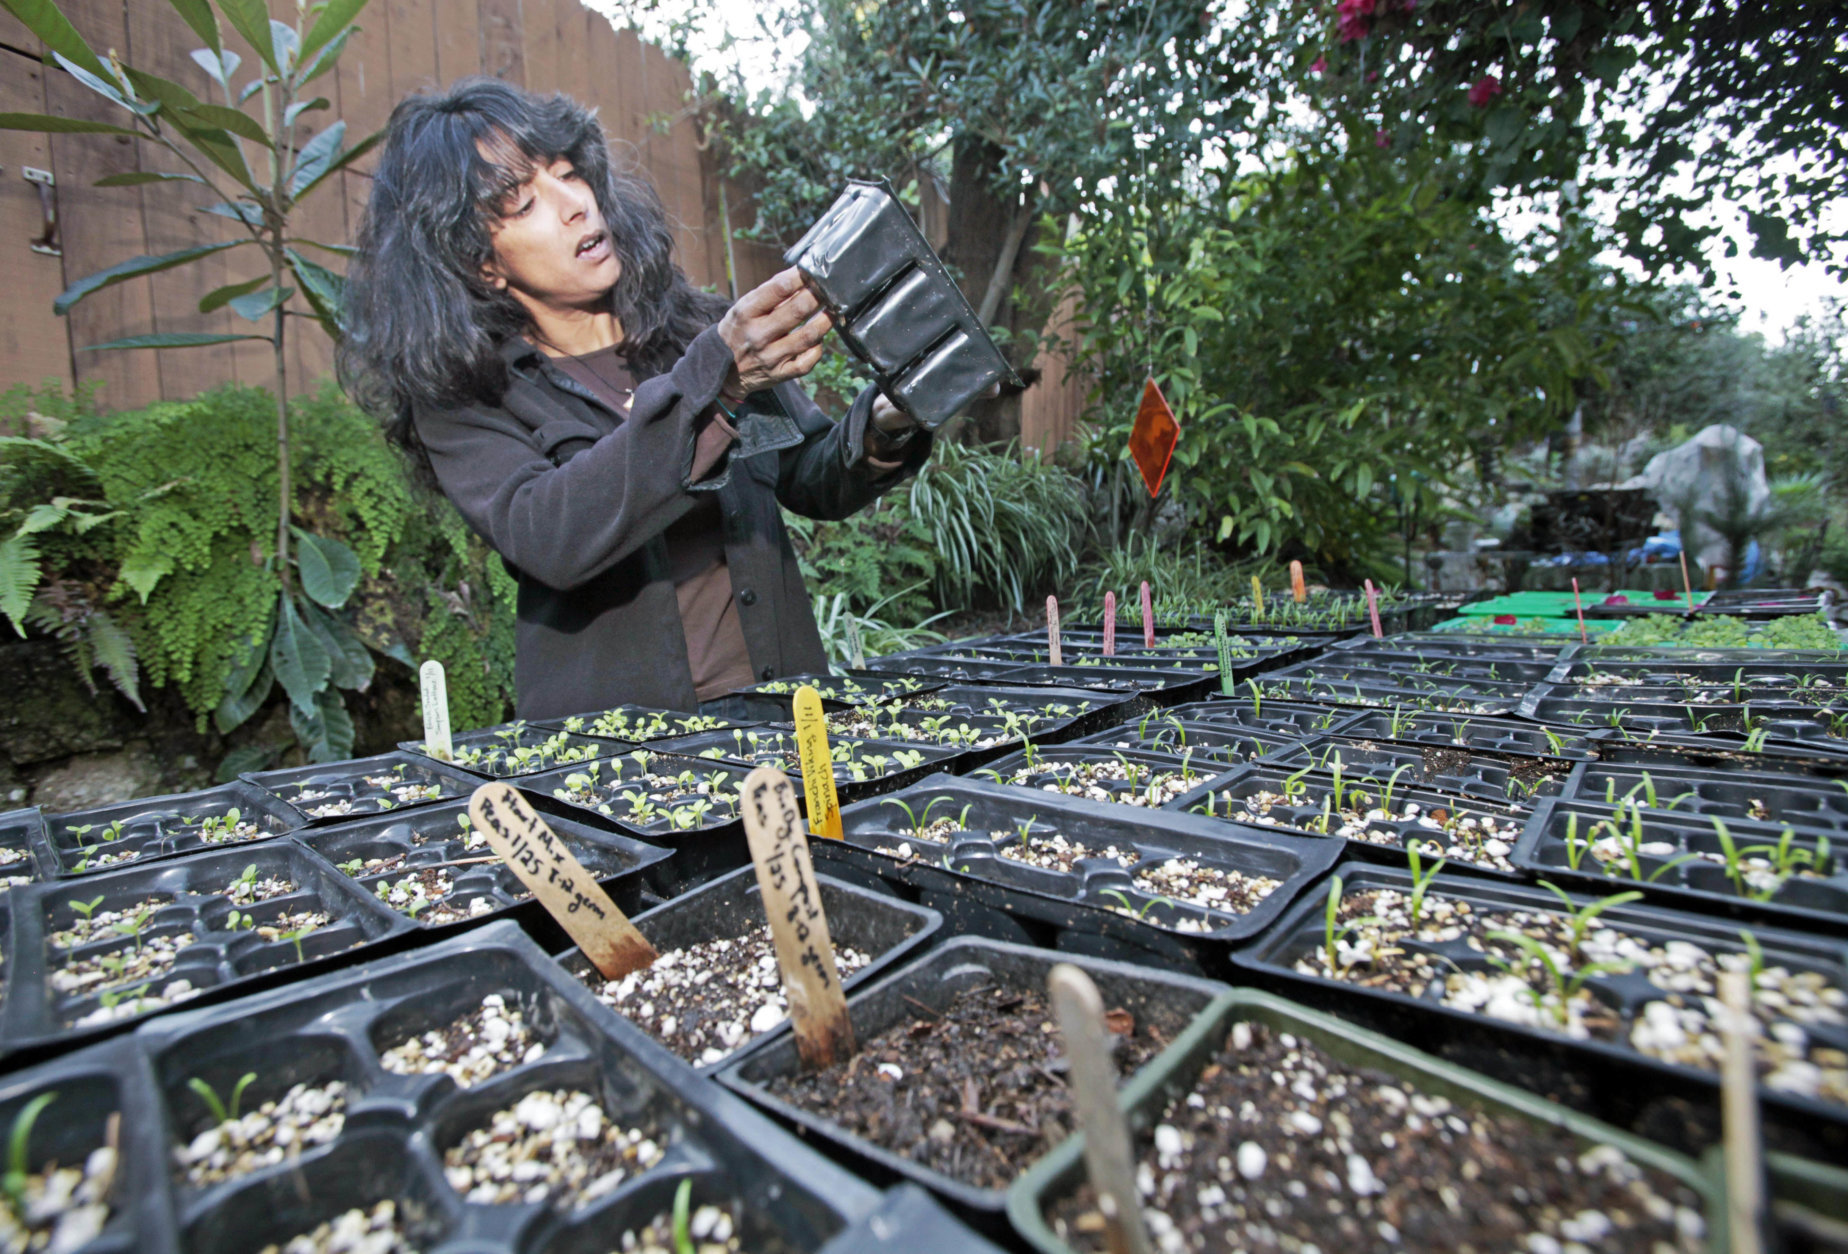 Tara Kolla examines a seedling container, amid other vegetable seedlings that will be planted this spring in the garden at her home in Los Angeles' Silver Lake district Wednesday, Jan. 27, 2010. Like many eco-minded gardeners, Kolla planted seeds, only to find that her garden violated local zoning laws and alienated her neighbors.  (AP Photo/Reed Saxon)